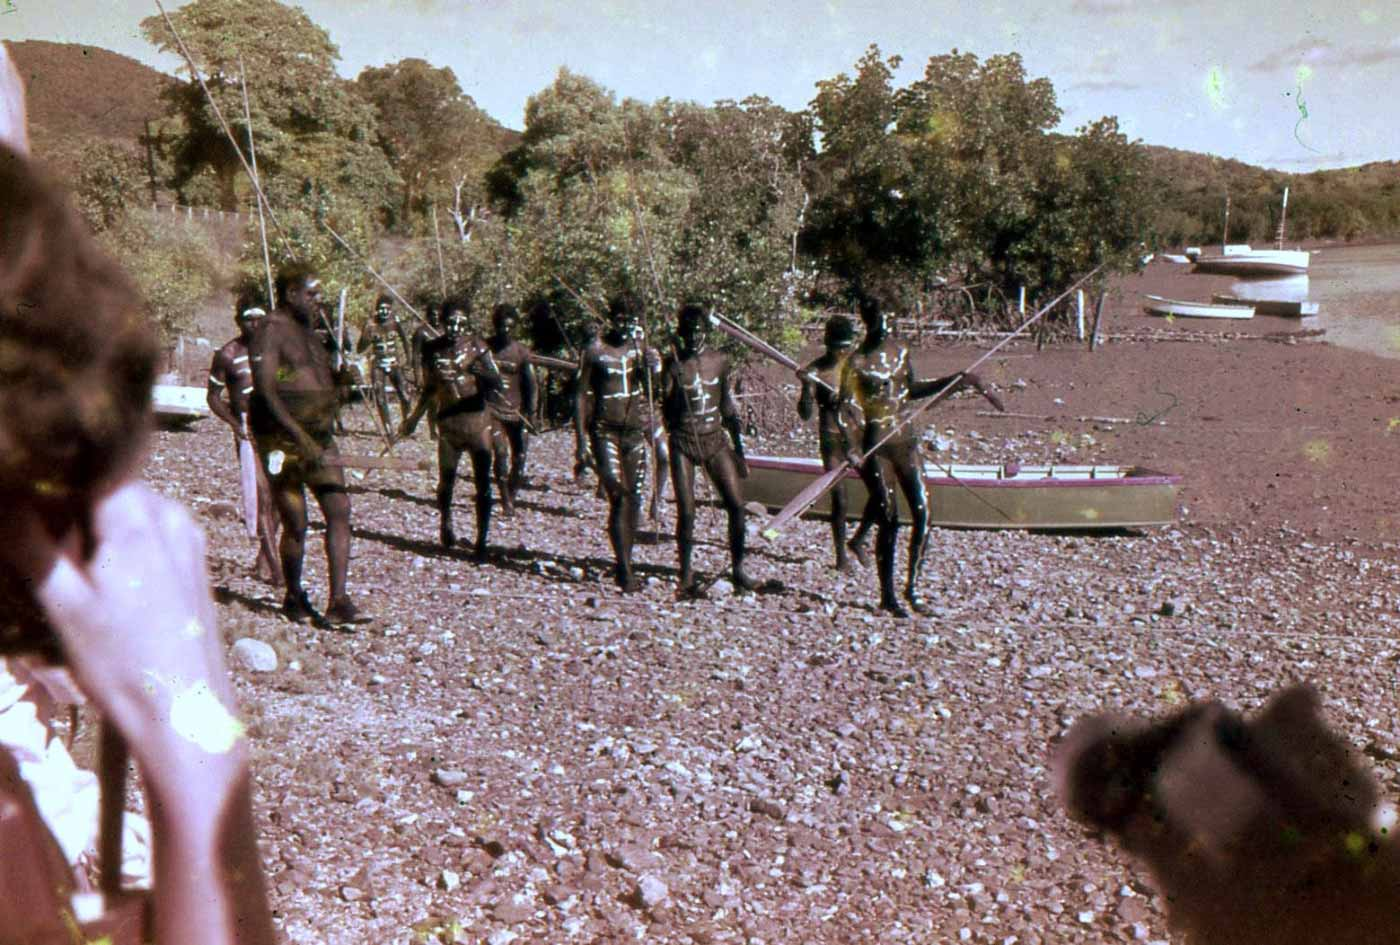 Colour photo of a group of men in costume and body paint carrying spears. They are walking along a rocky beach. - click to view larger image